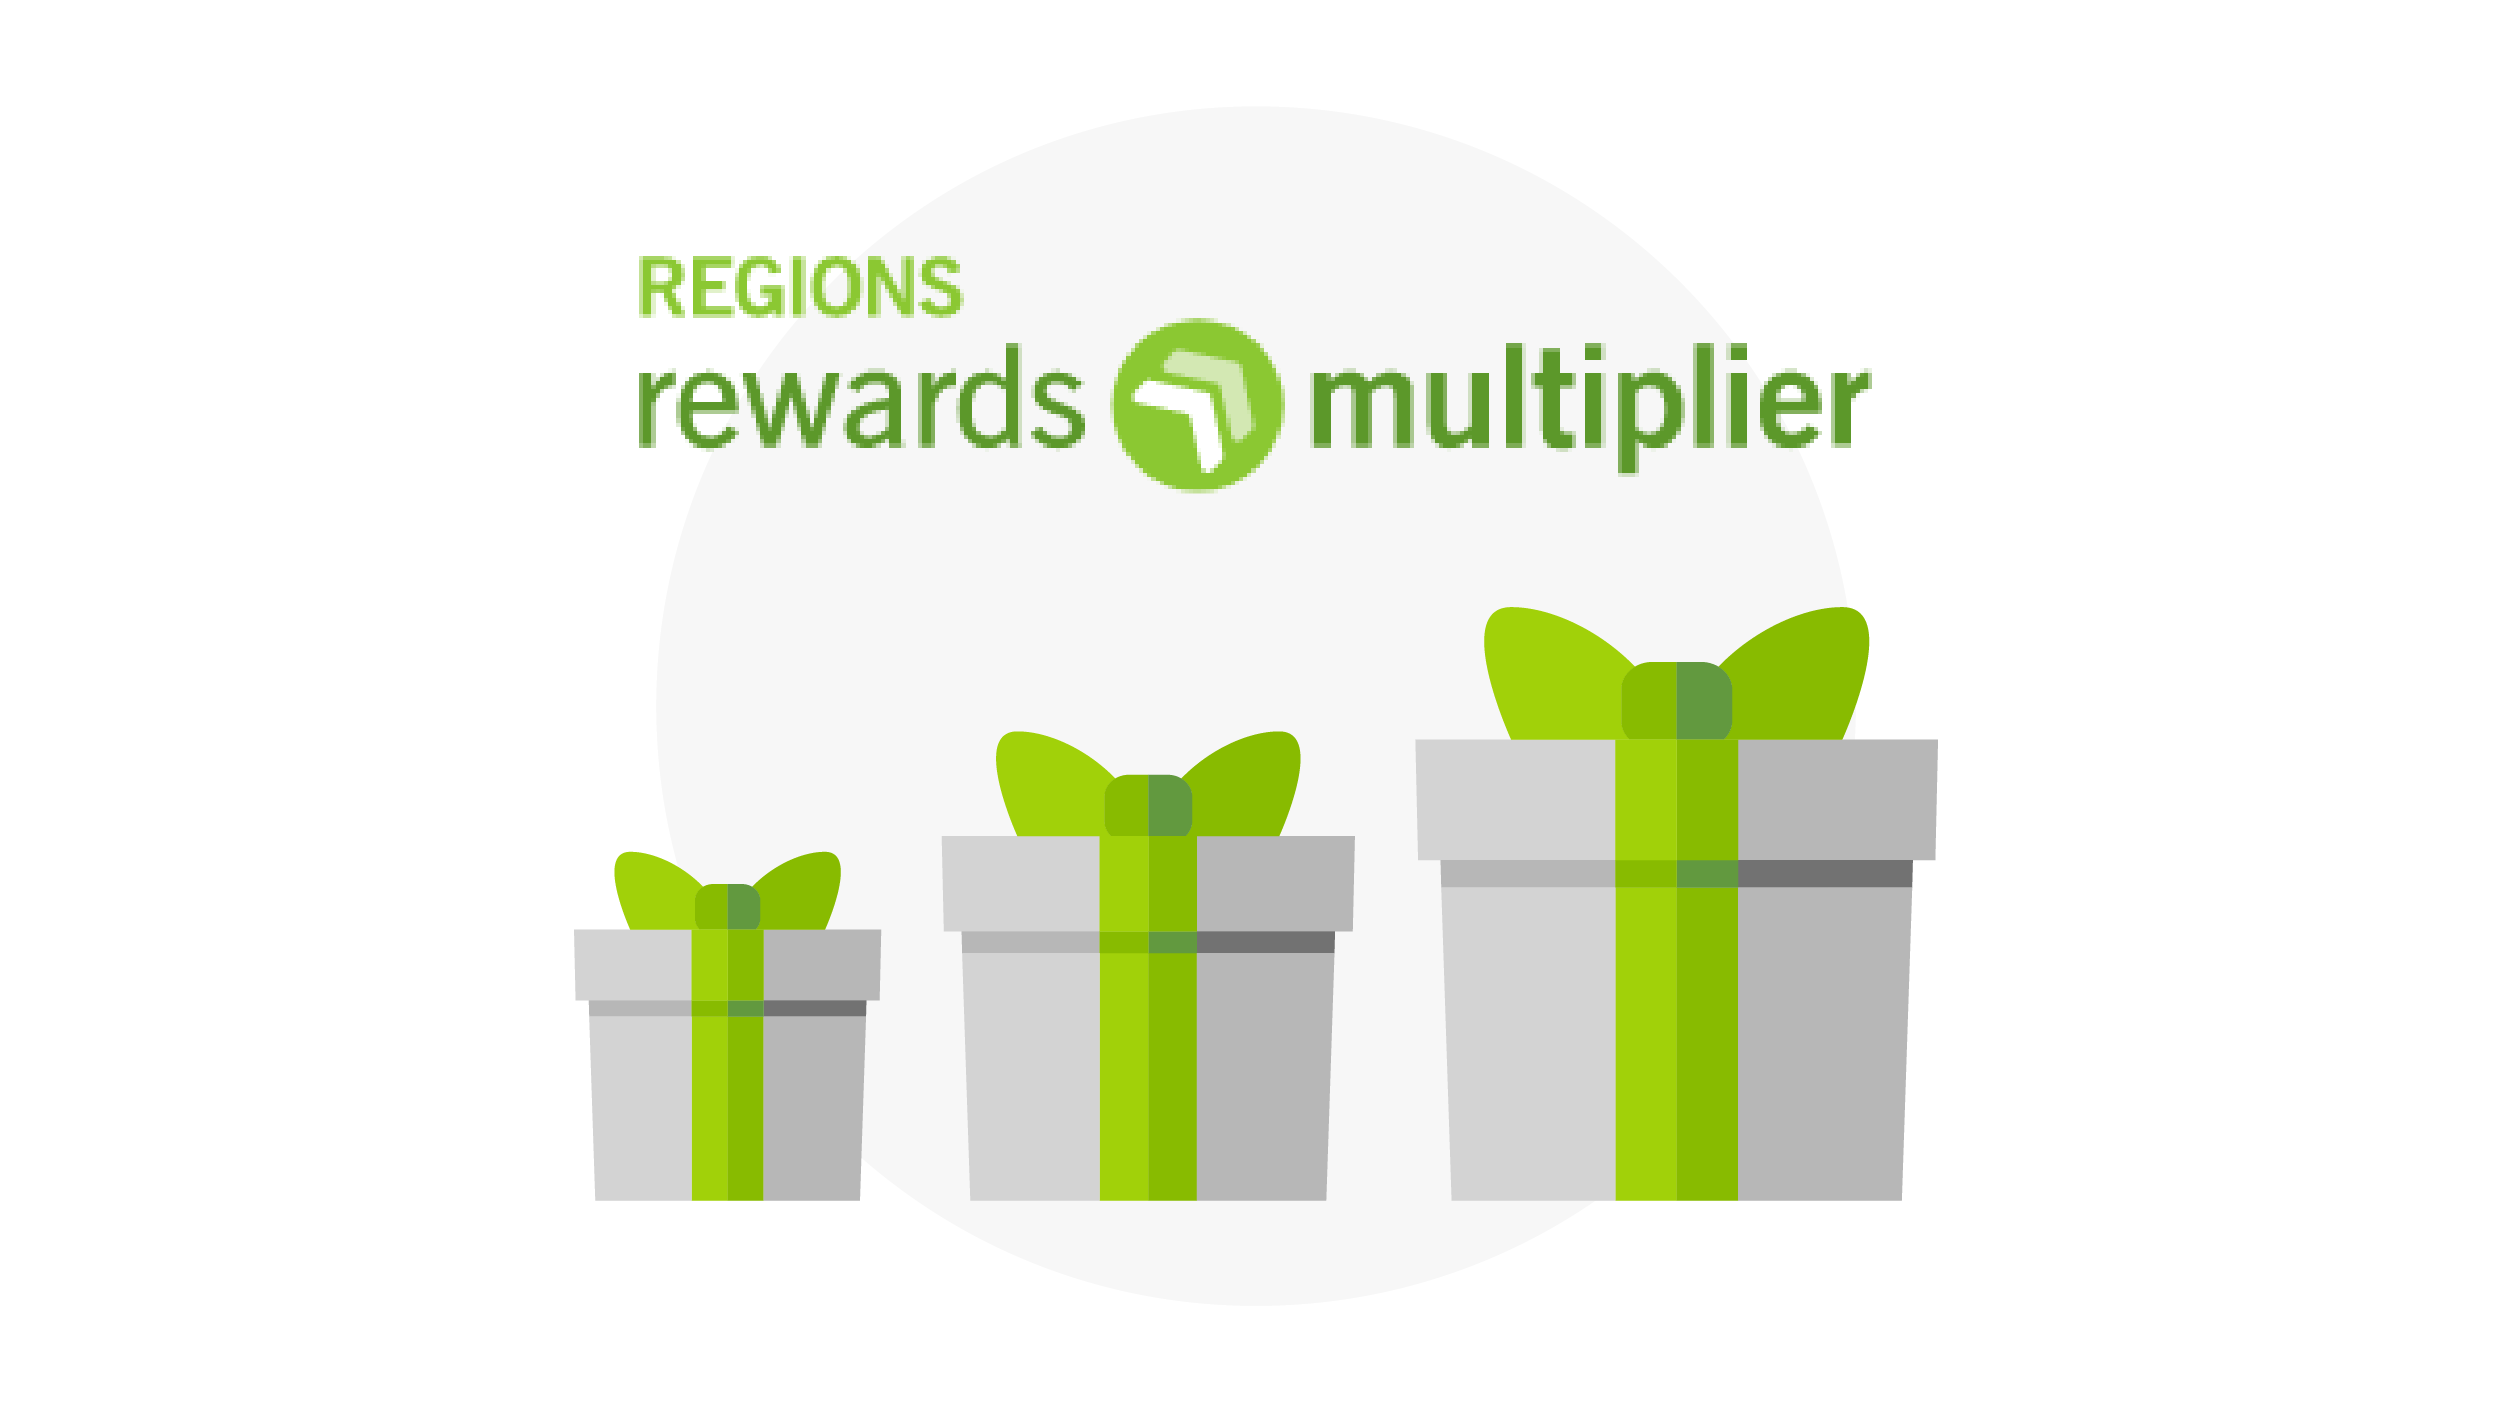 regions rewards multiplier